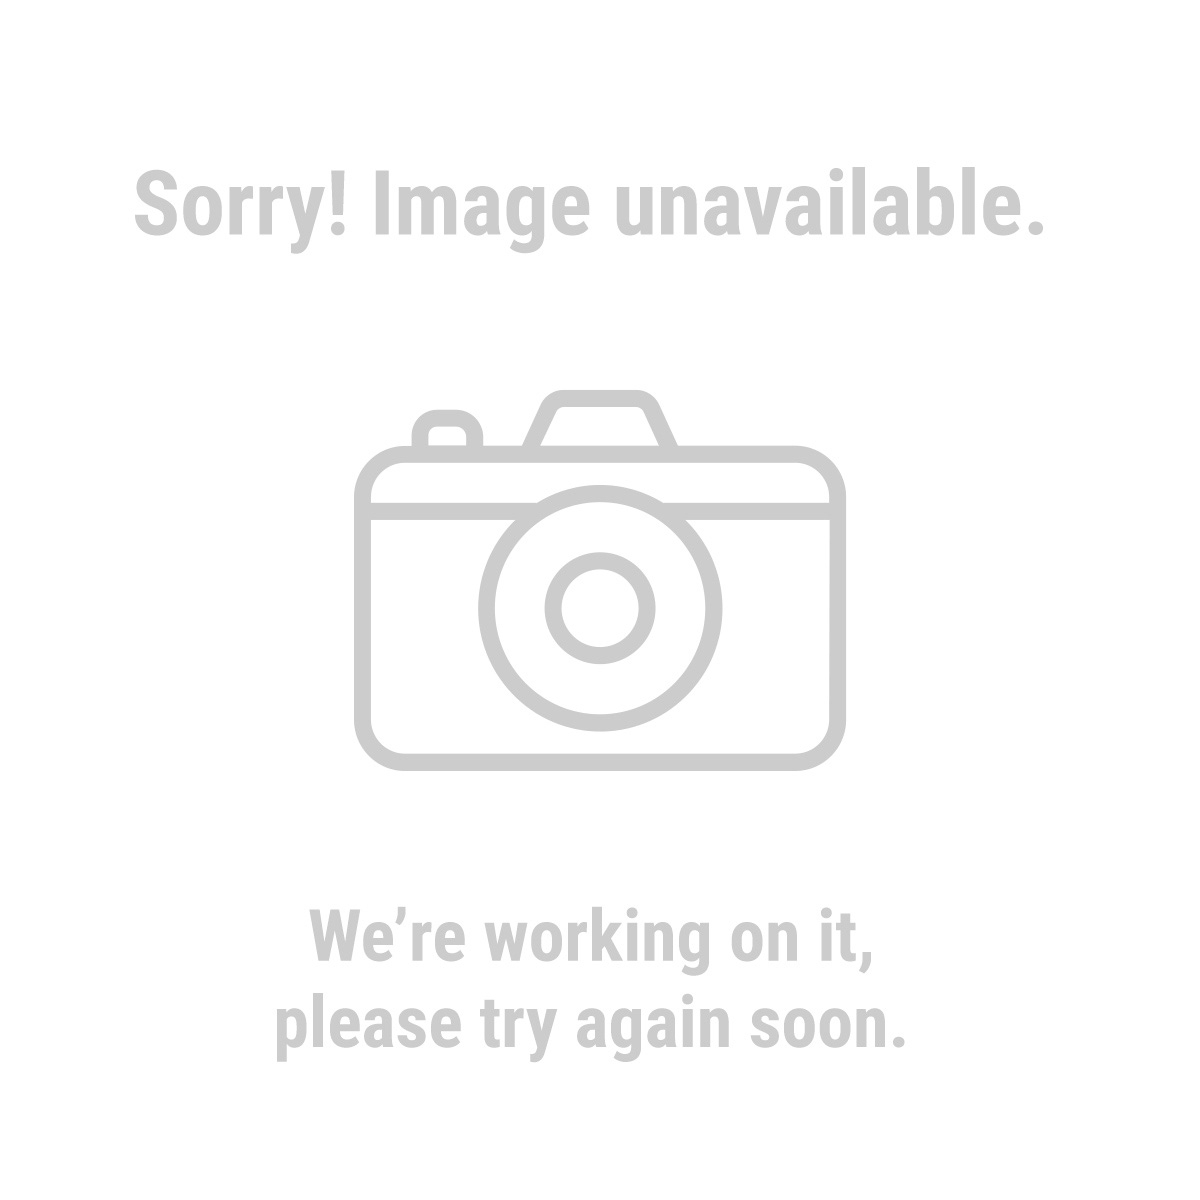 harbor freight sheet metal brake. improved parts improvedparts specialty tools and unique harbor freight sheet metal brake